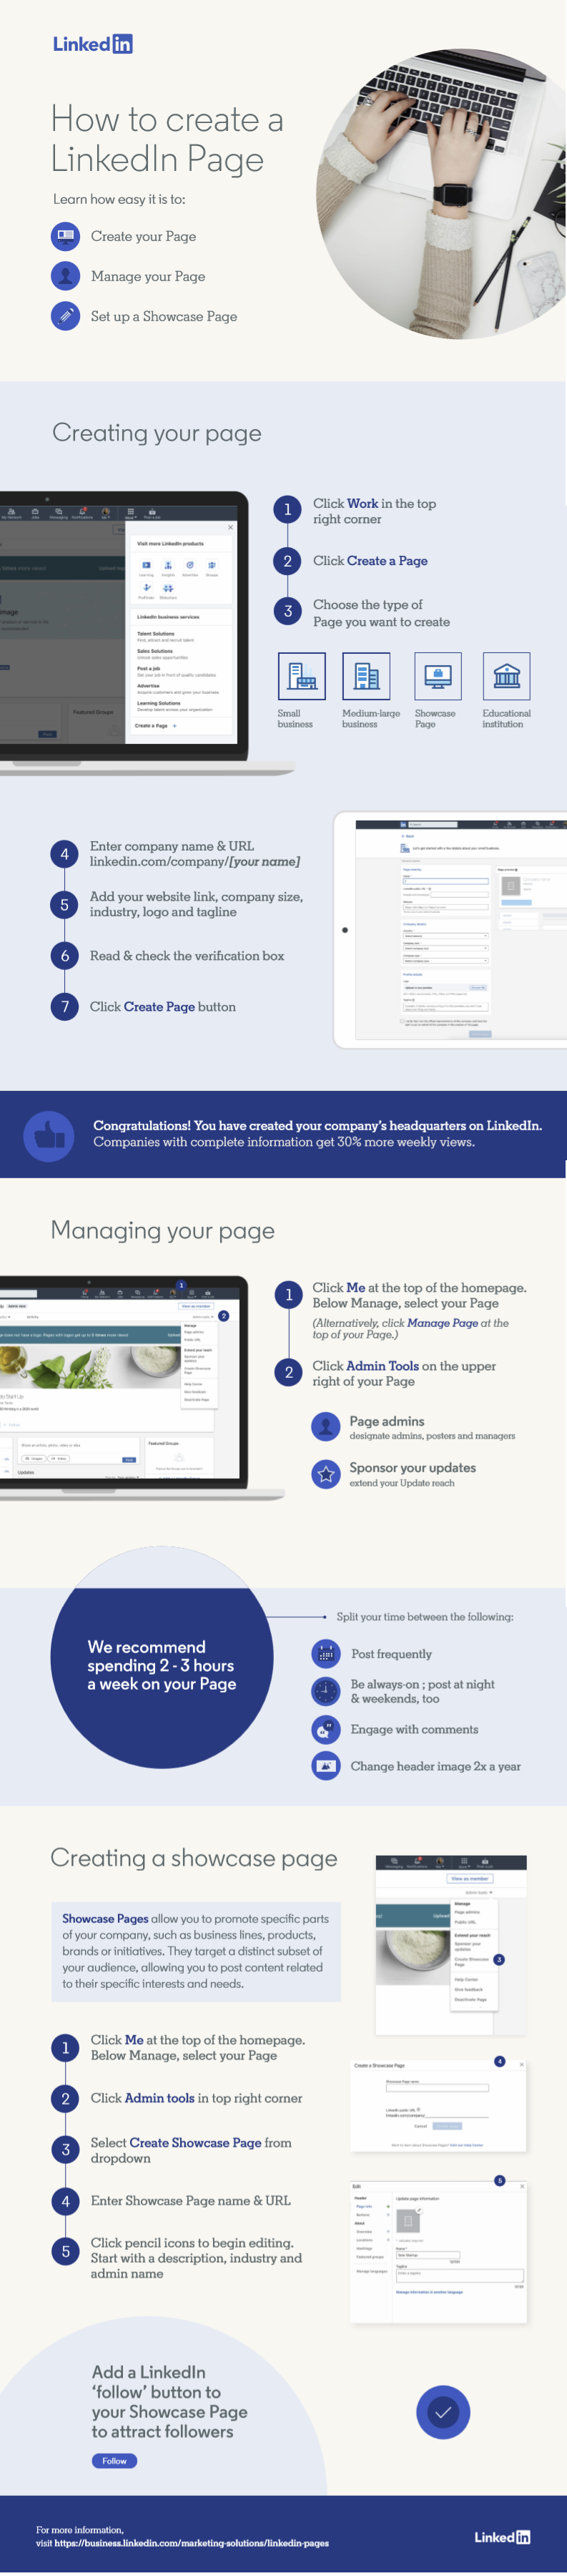 Infographic outlines essential Linkedin company page tips